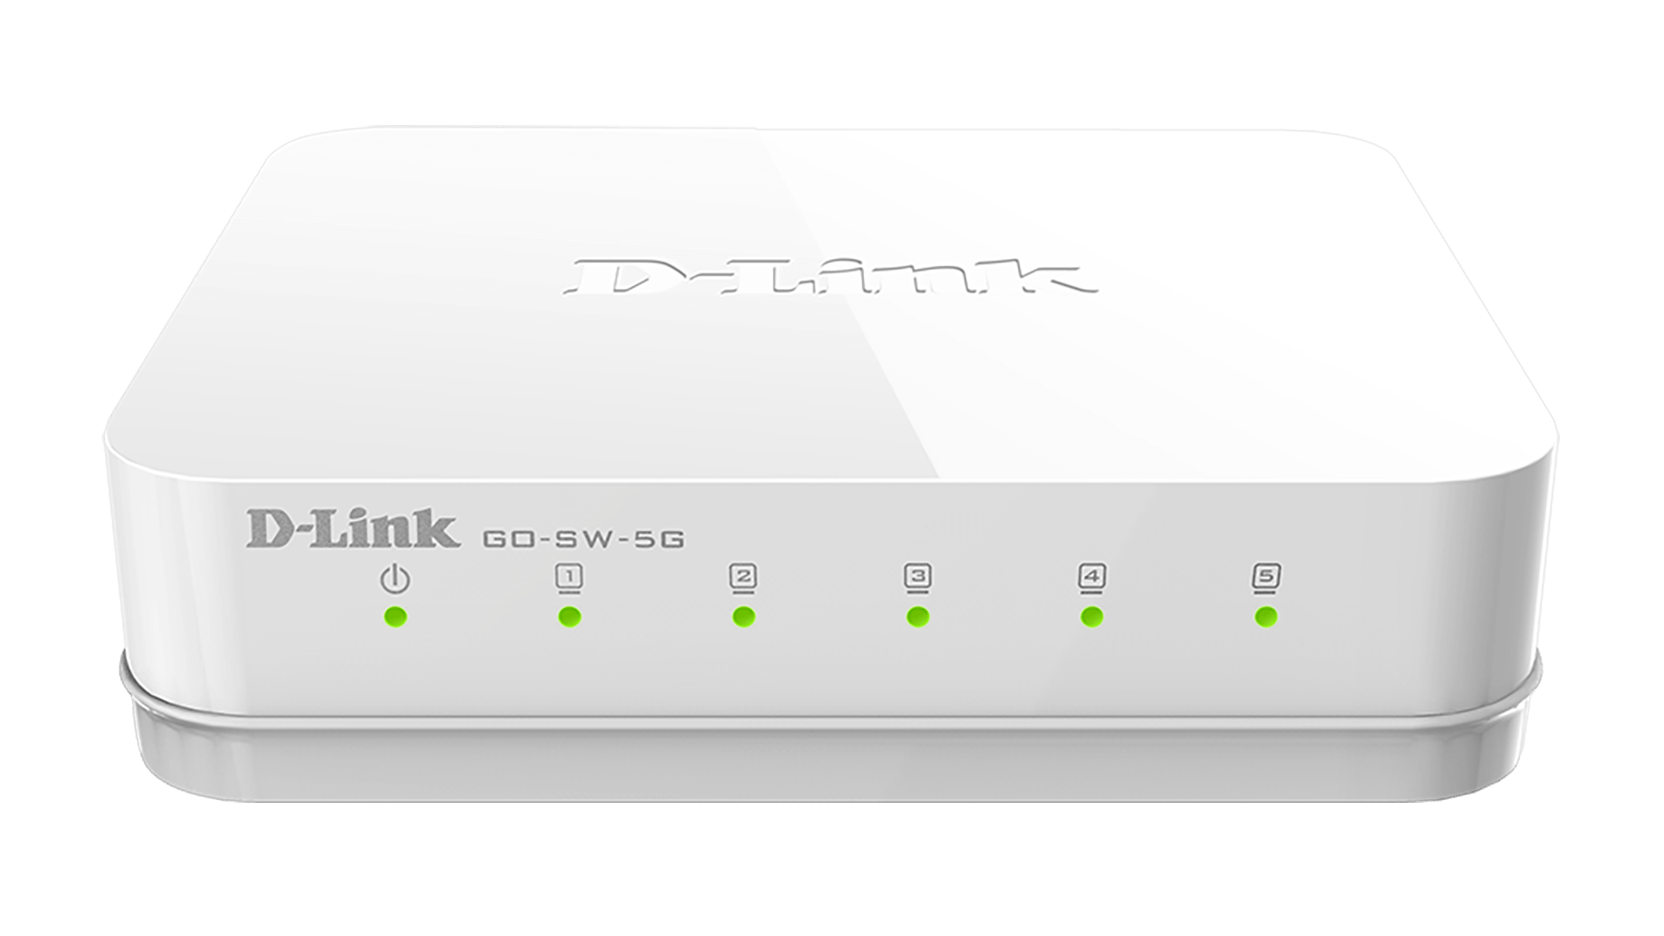 switch Ethernet Go-SW-5G